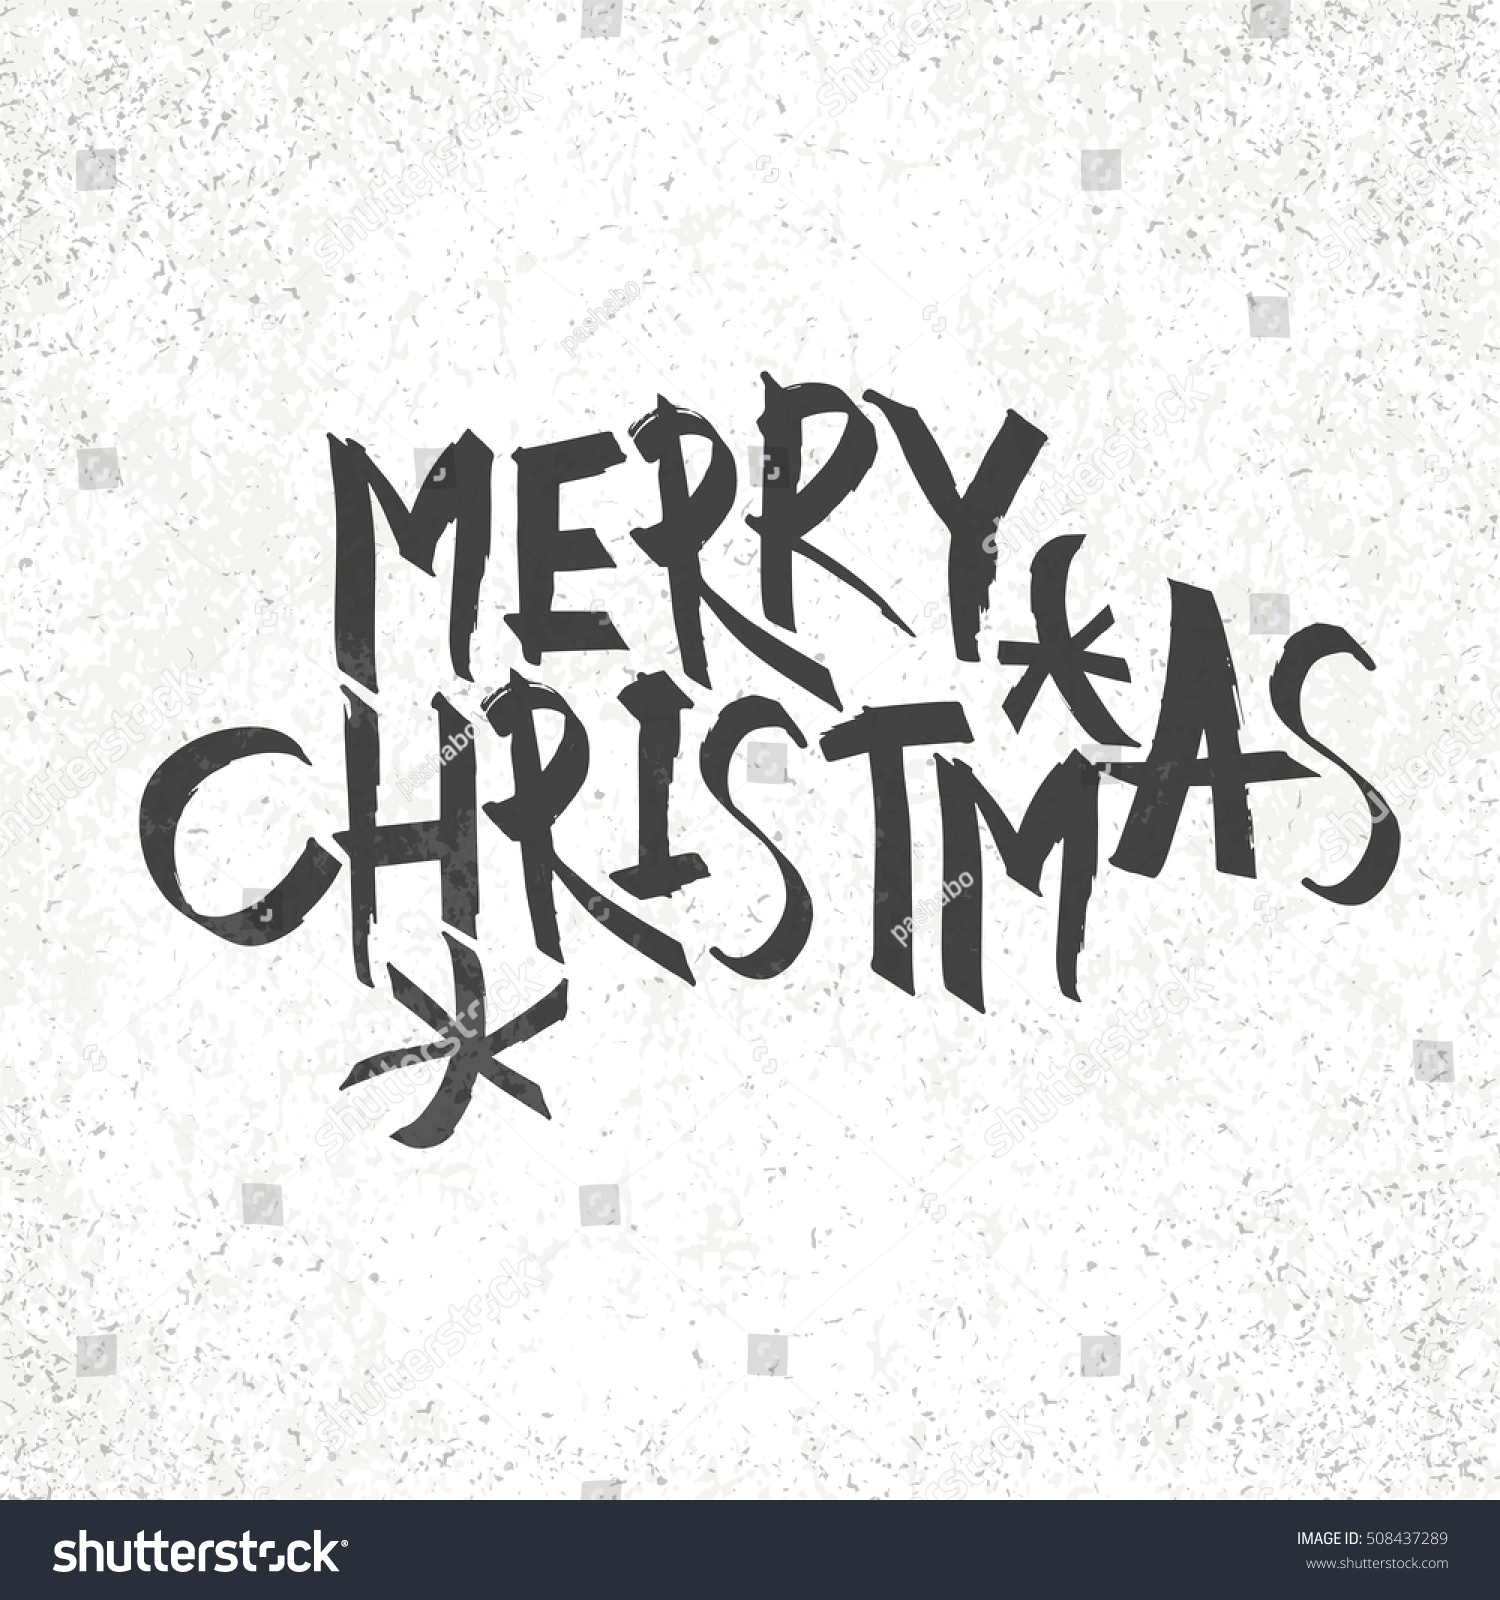 Pics photos merry christmas argyle twitter backgrounds - Merry Christmas Vintage Monochrome Lettering With Snowflake Symbol On Background